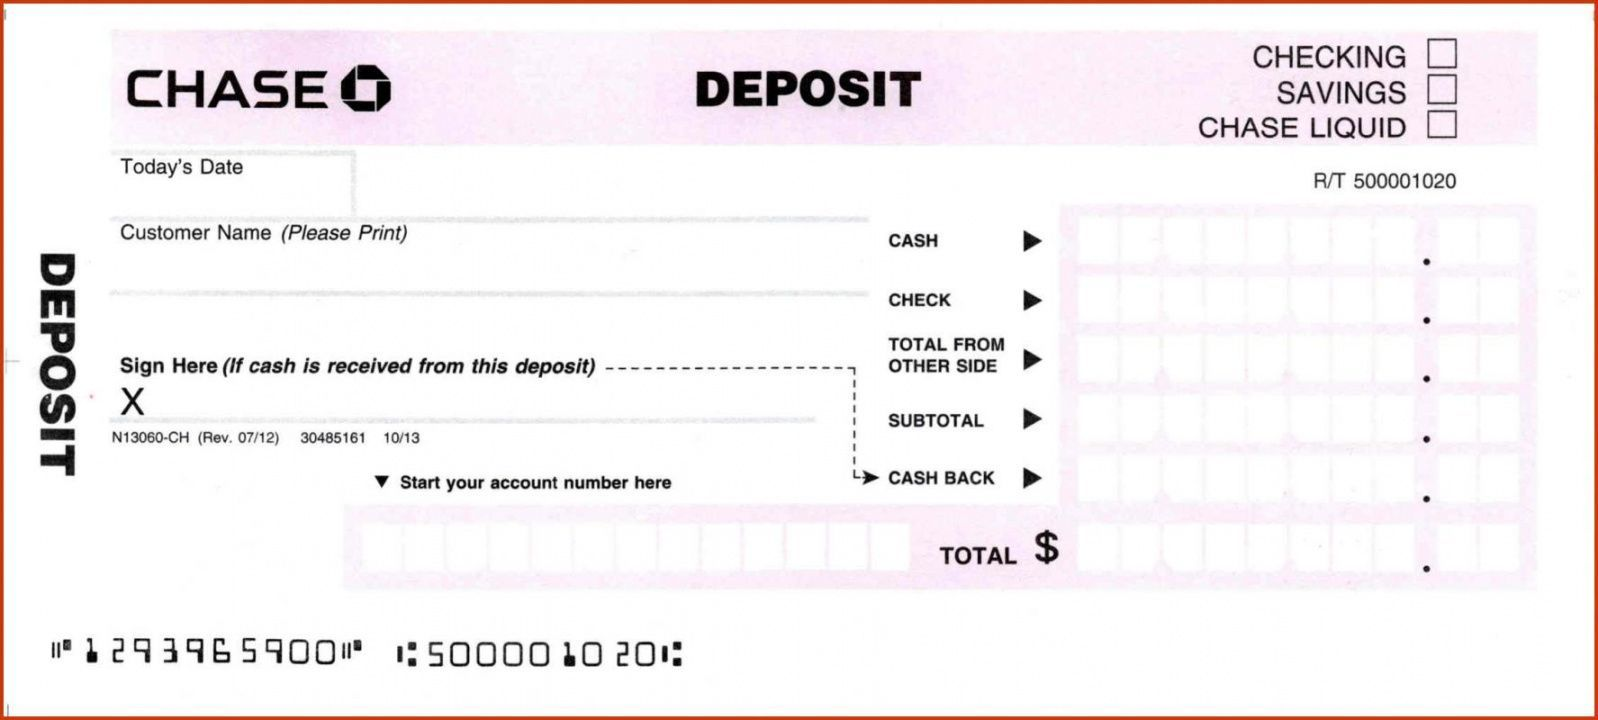 Browse Our Image Of Bank Deposit Slip Template For Free Deposit Bank Deposit Templates